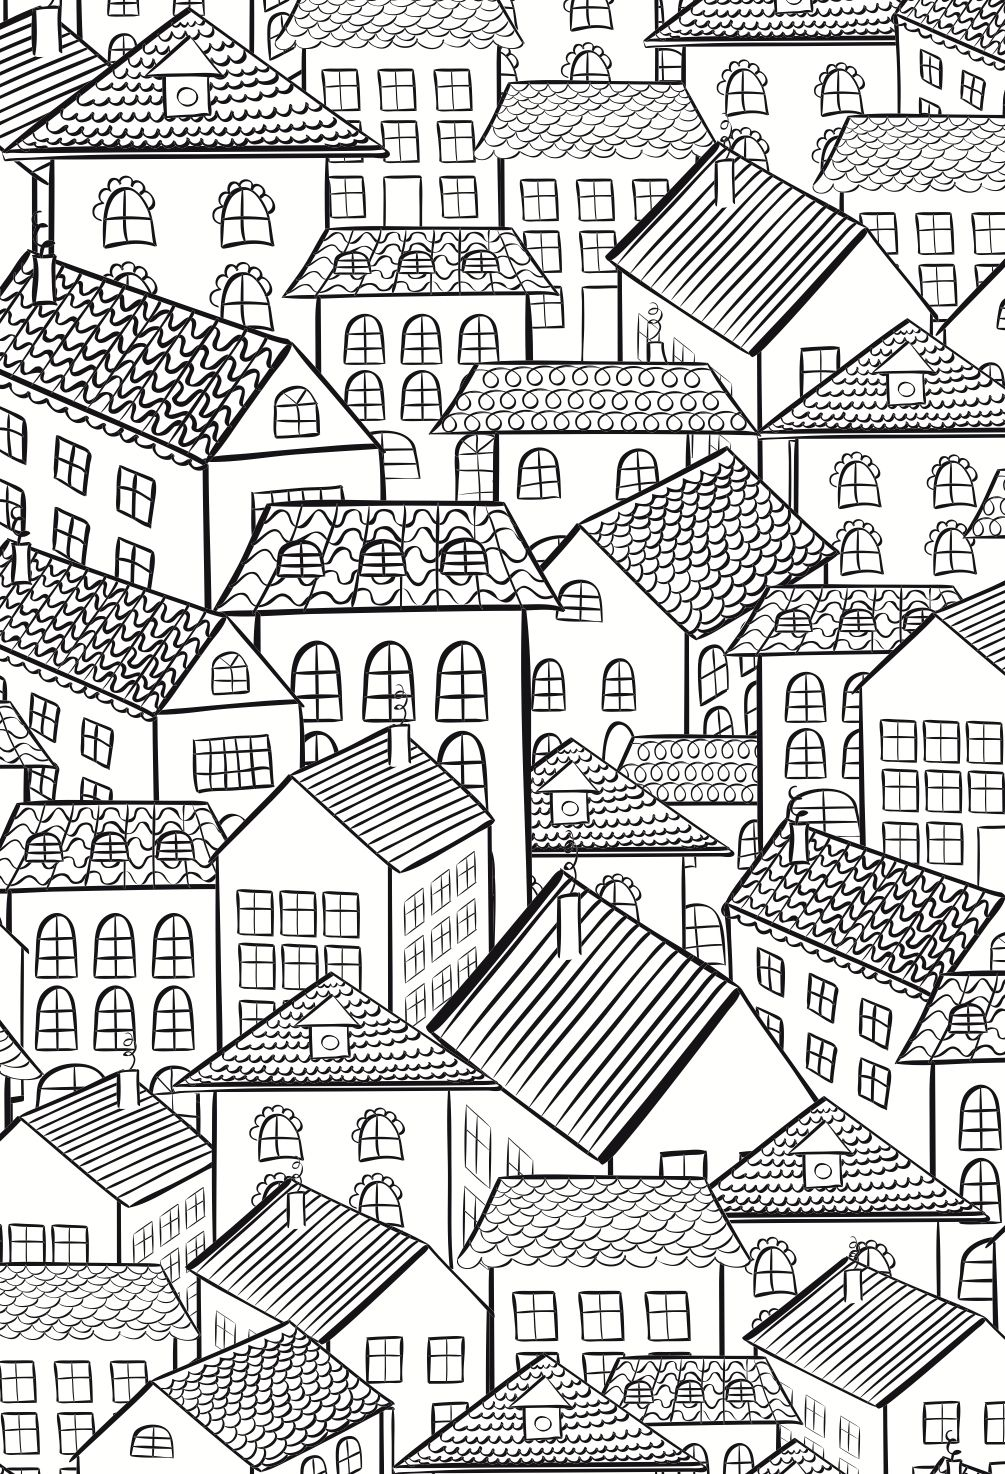 Colouring Books For Adults | Coloring Pages | House